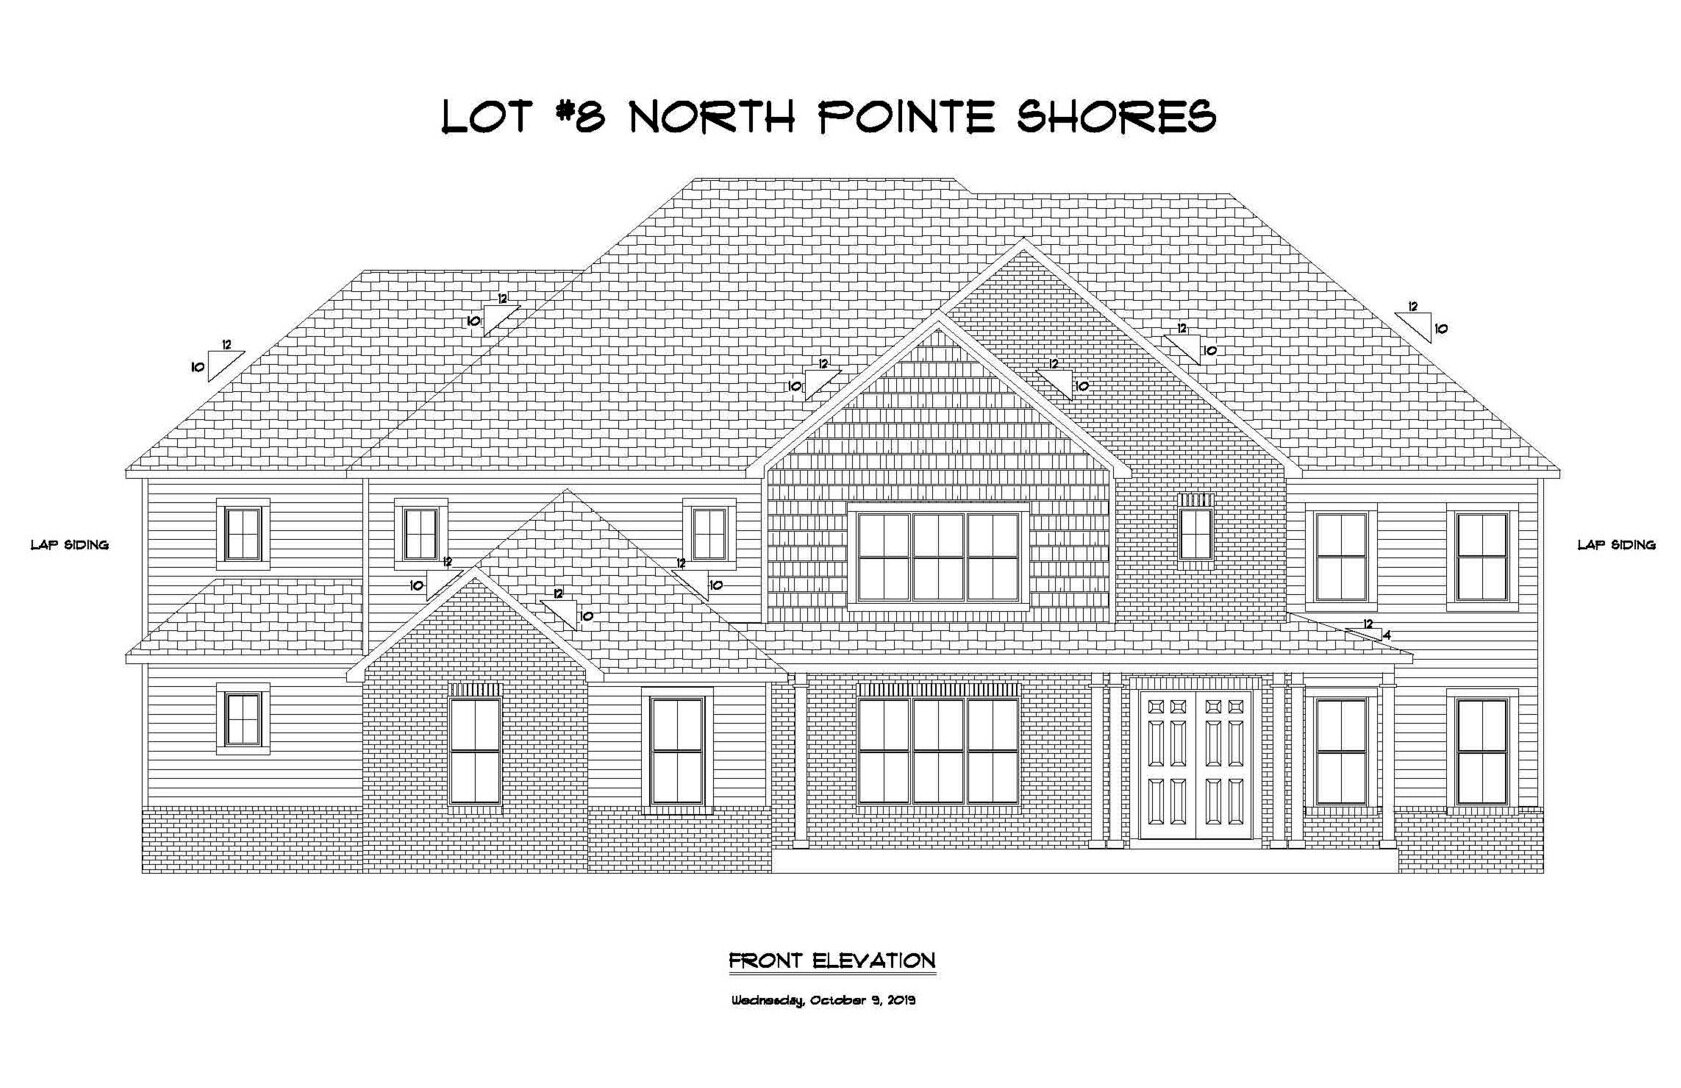 Front+Elevation-+Lot+8+North+Pointe+Shores.jpg